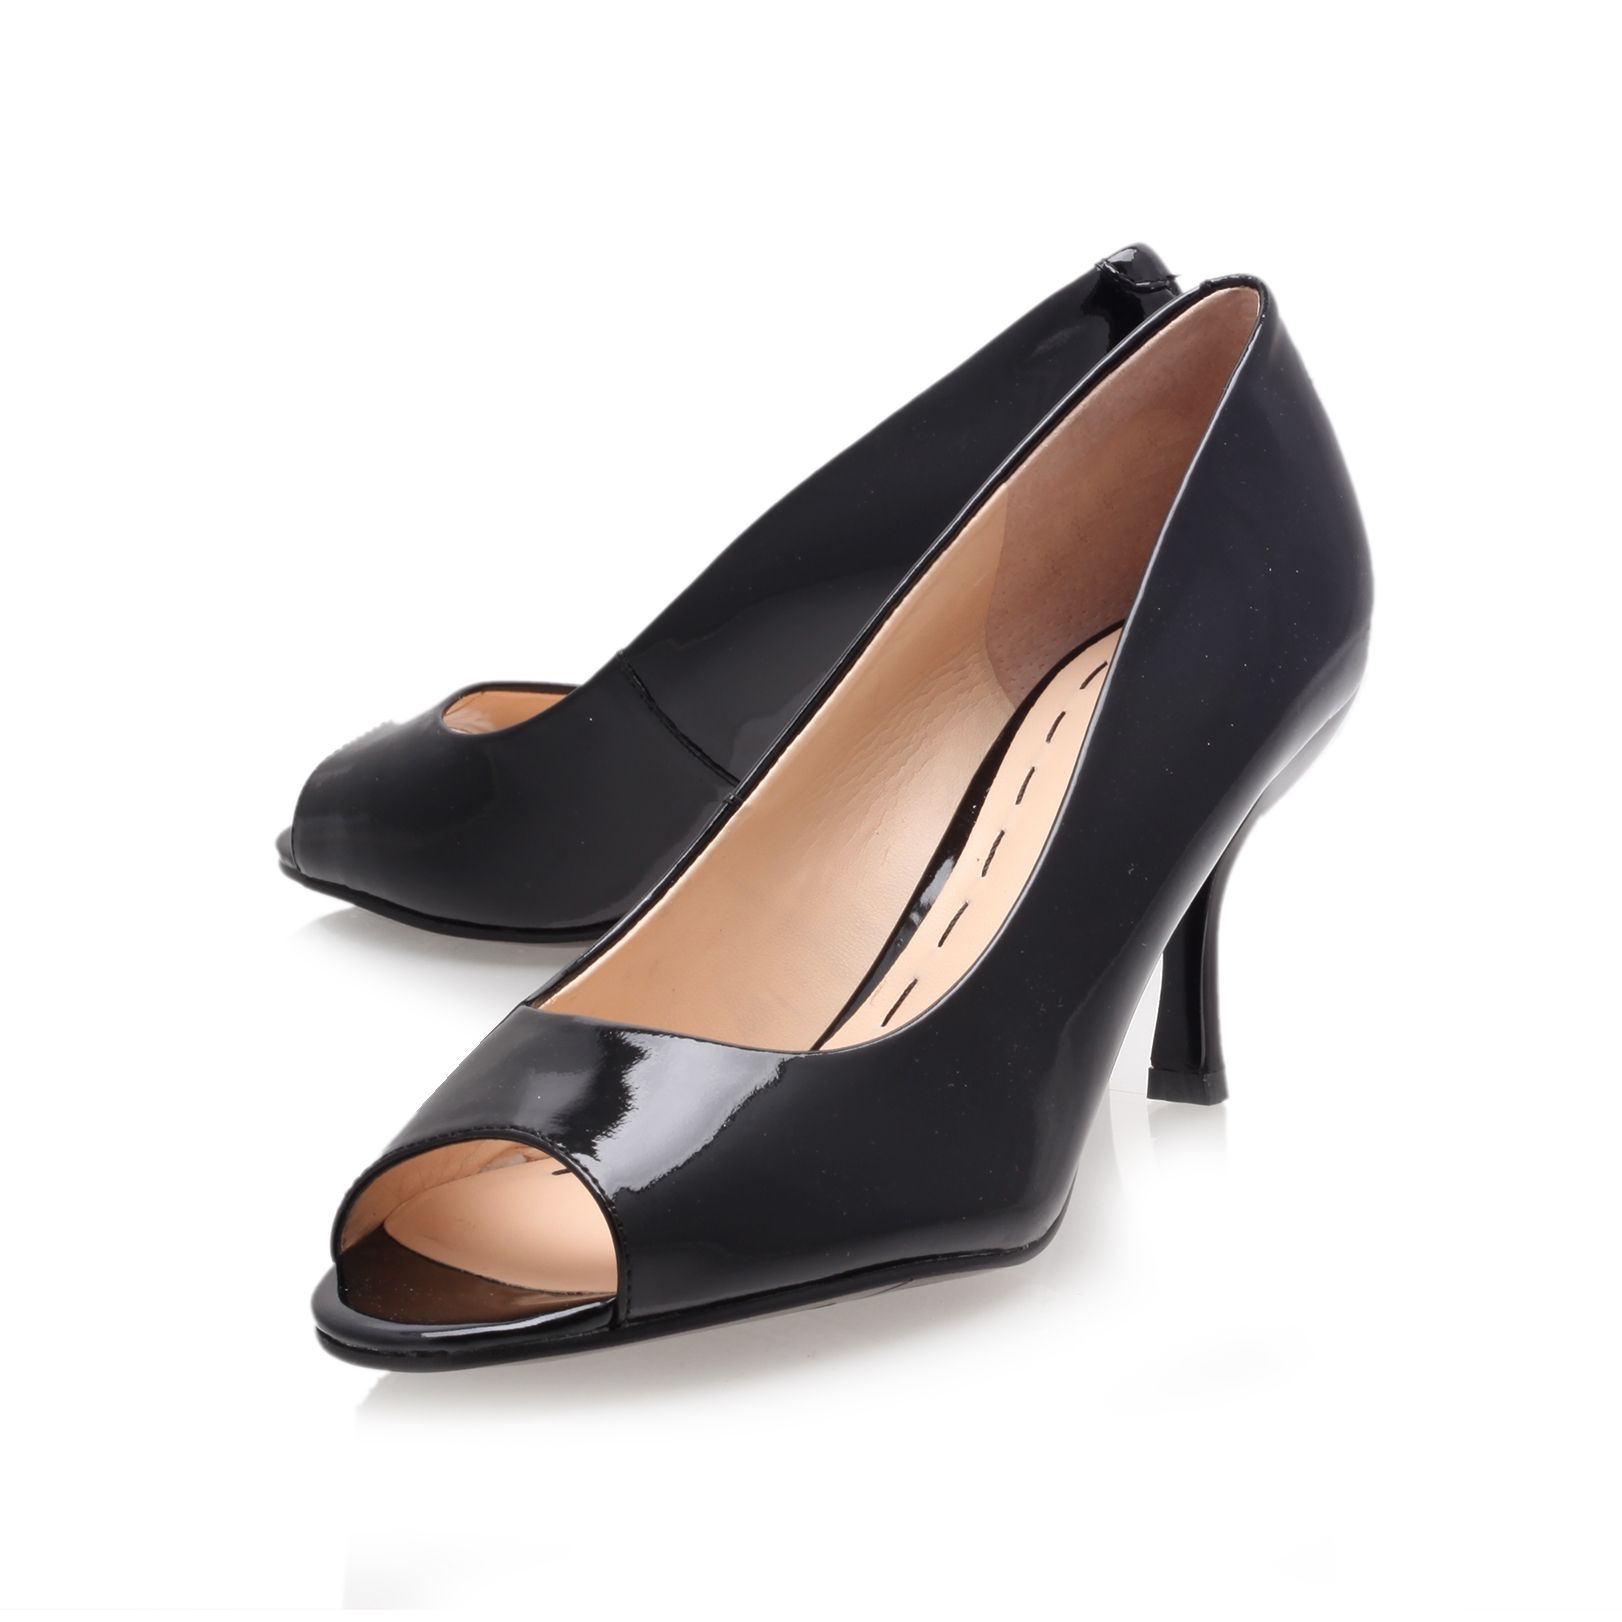 Quinty mid heel peep toe court shoes